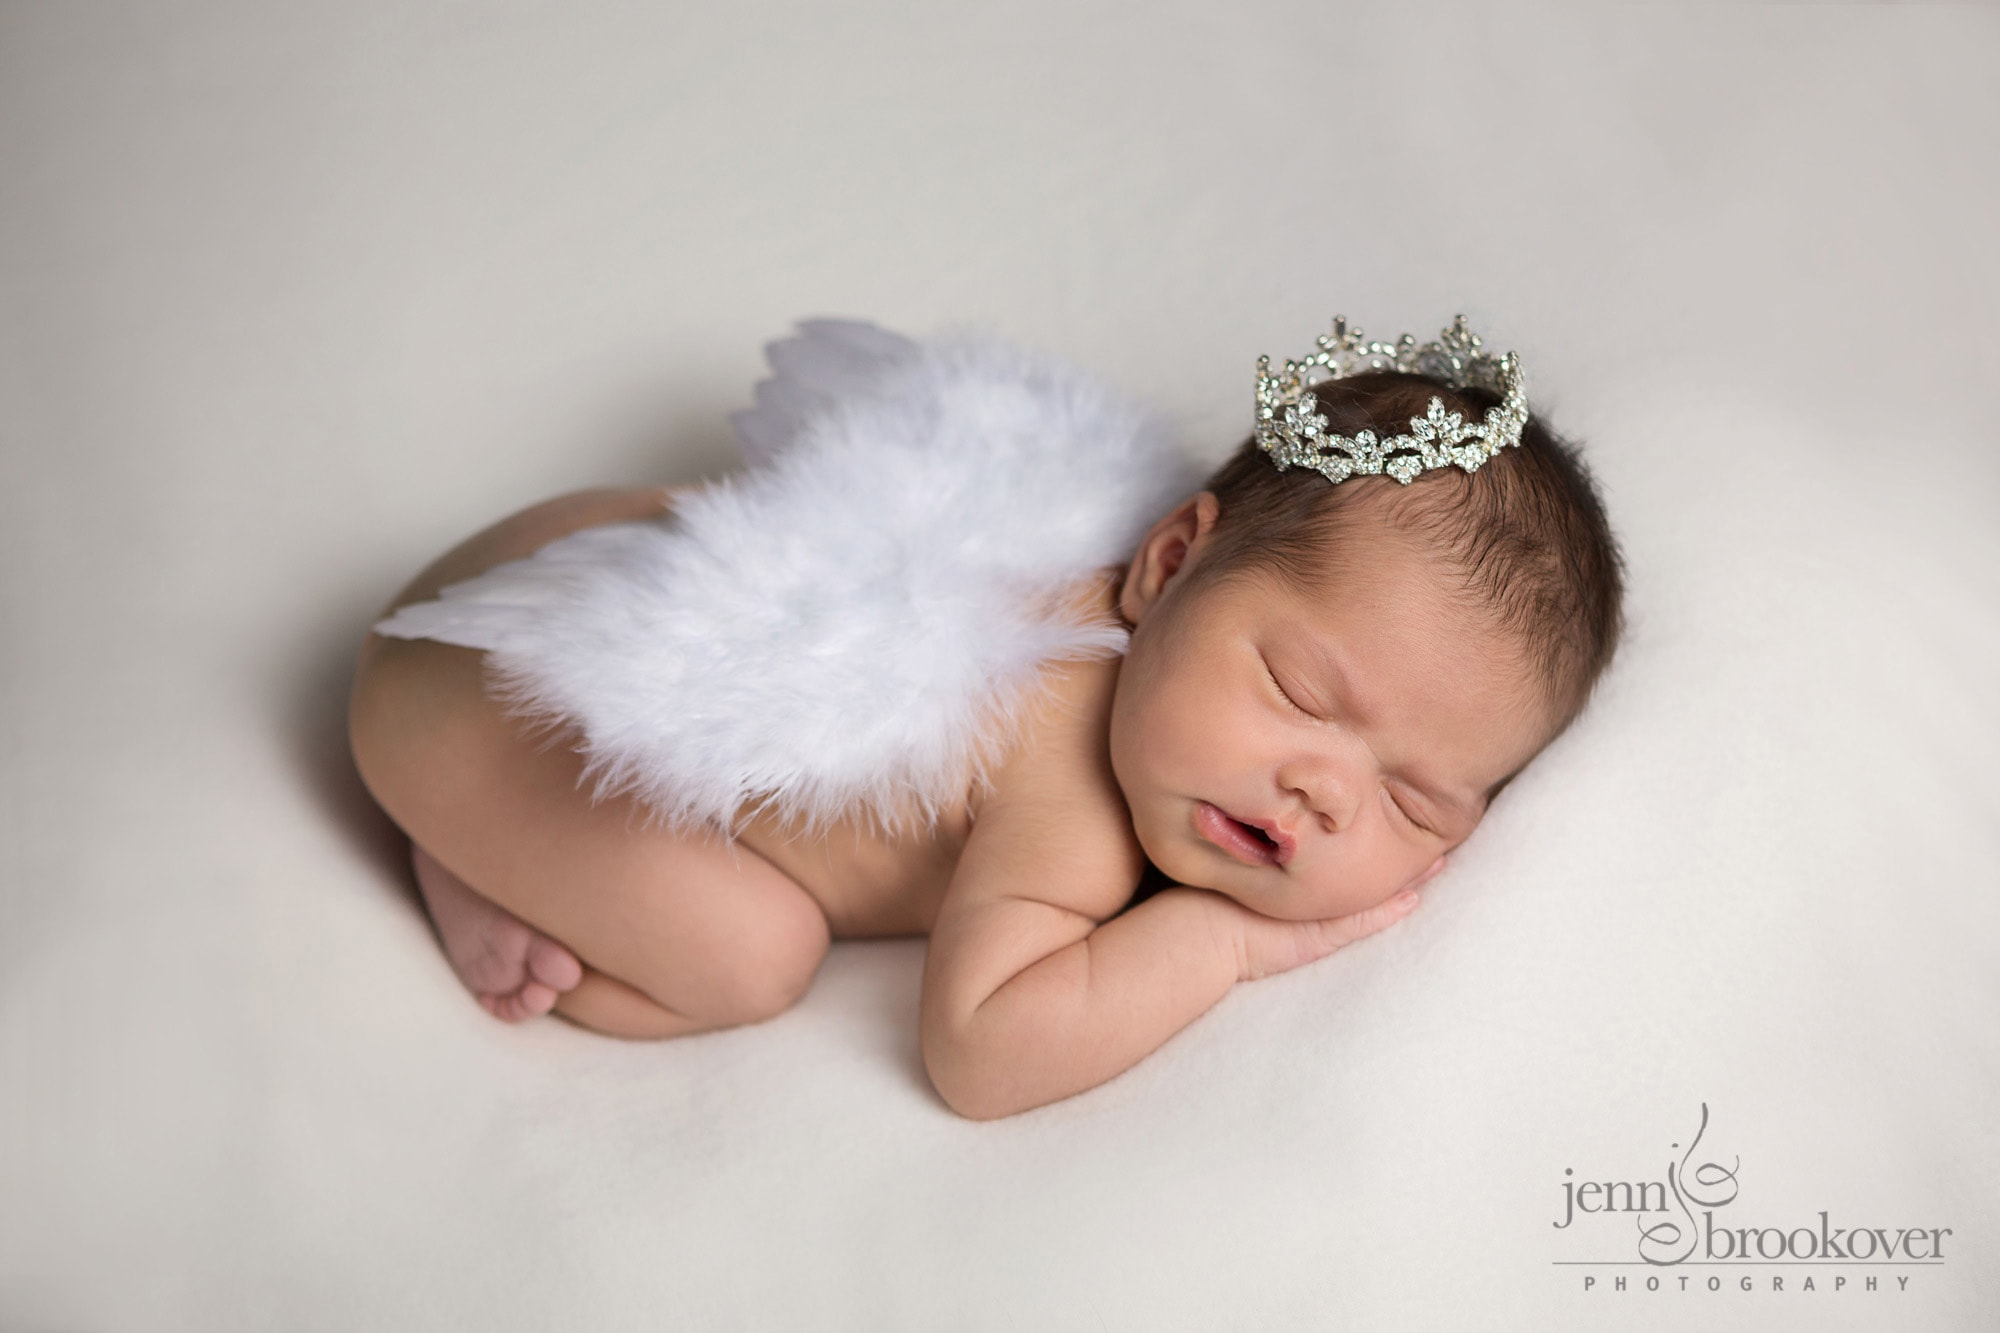 newborn with wings and crown sleeping on white background during her photo shoot with Jenn Brookover Photography in San Antonio